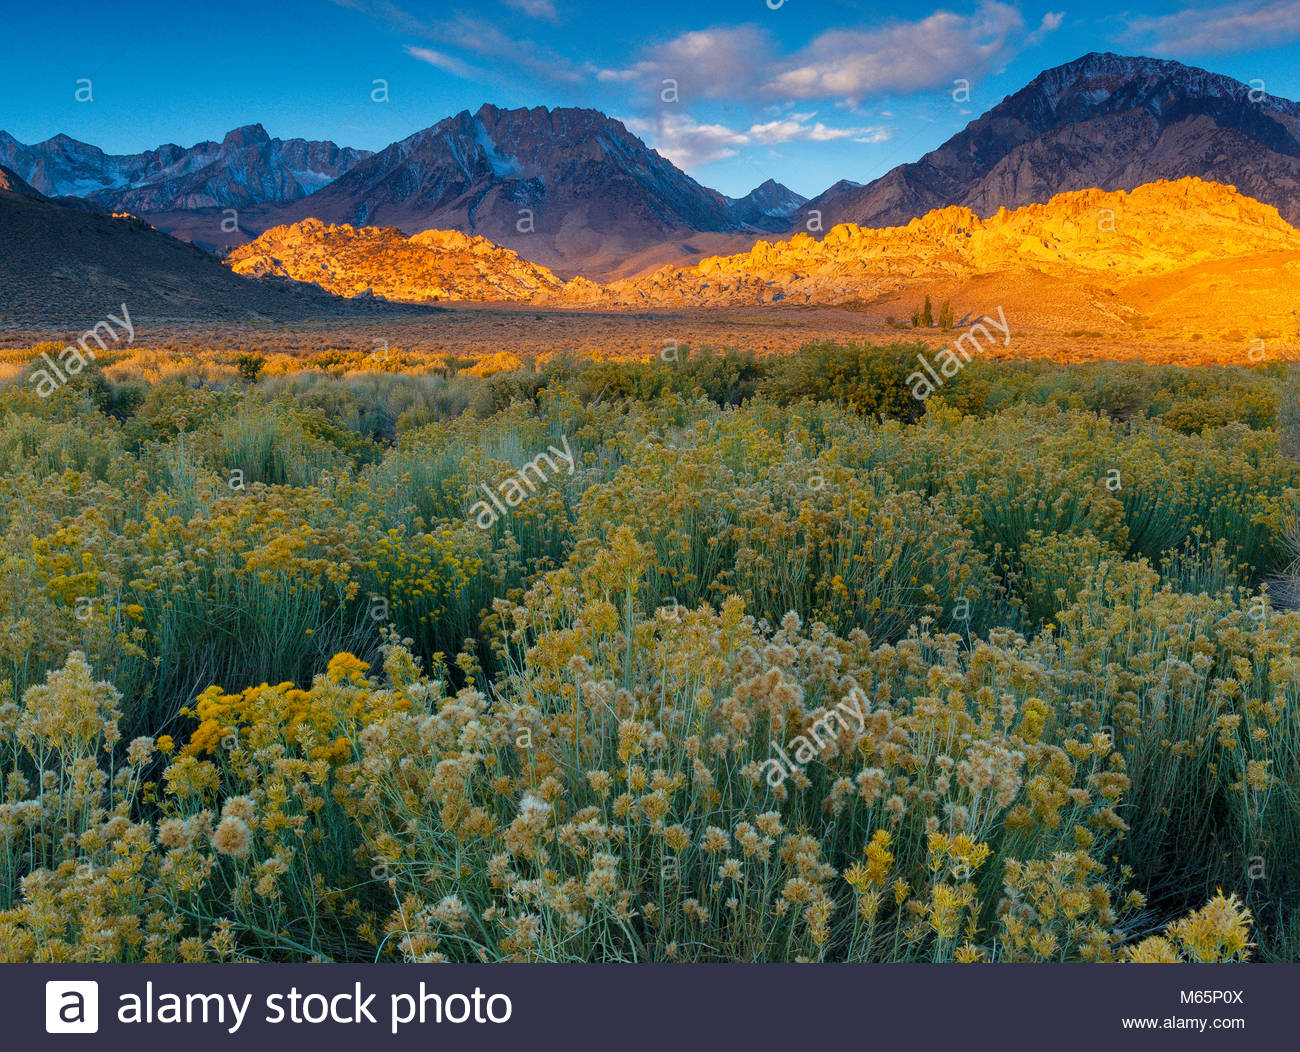 Sunrise, The Buttermilks, Basin Mountain, Mount Tom, Bishop Creek National Recreation Area, Inyo National Forest, - Stock Image